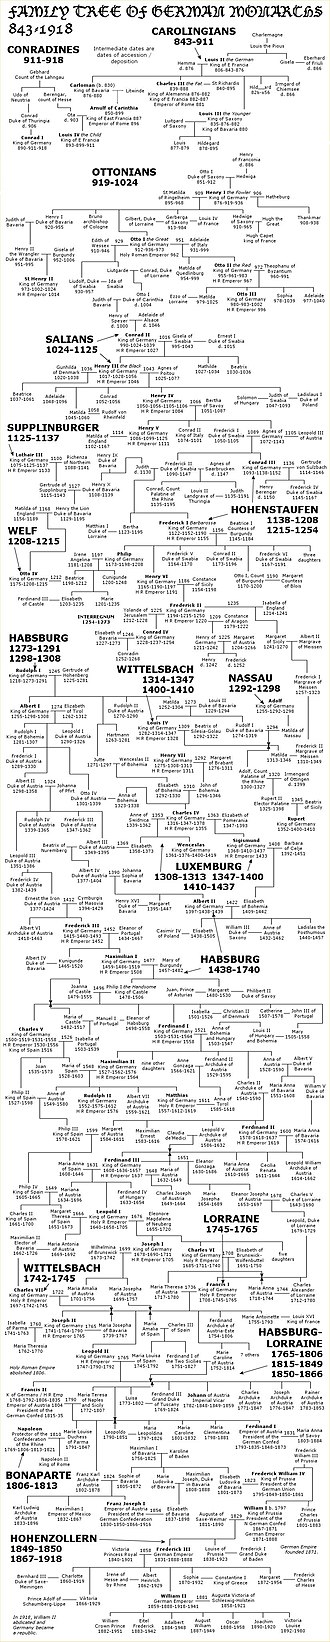 Family tree of the German monarchs - Image: German monarchs family tree